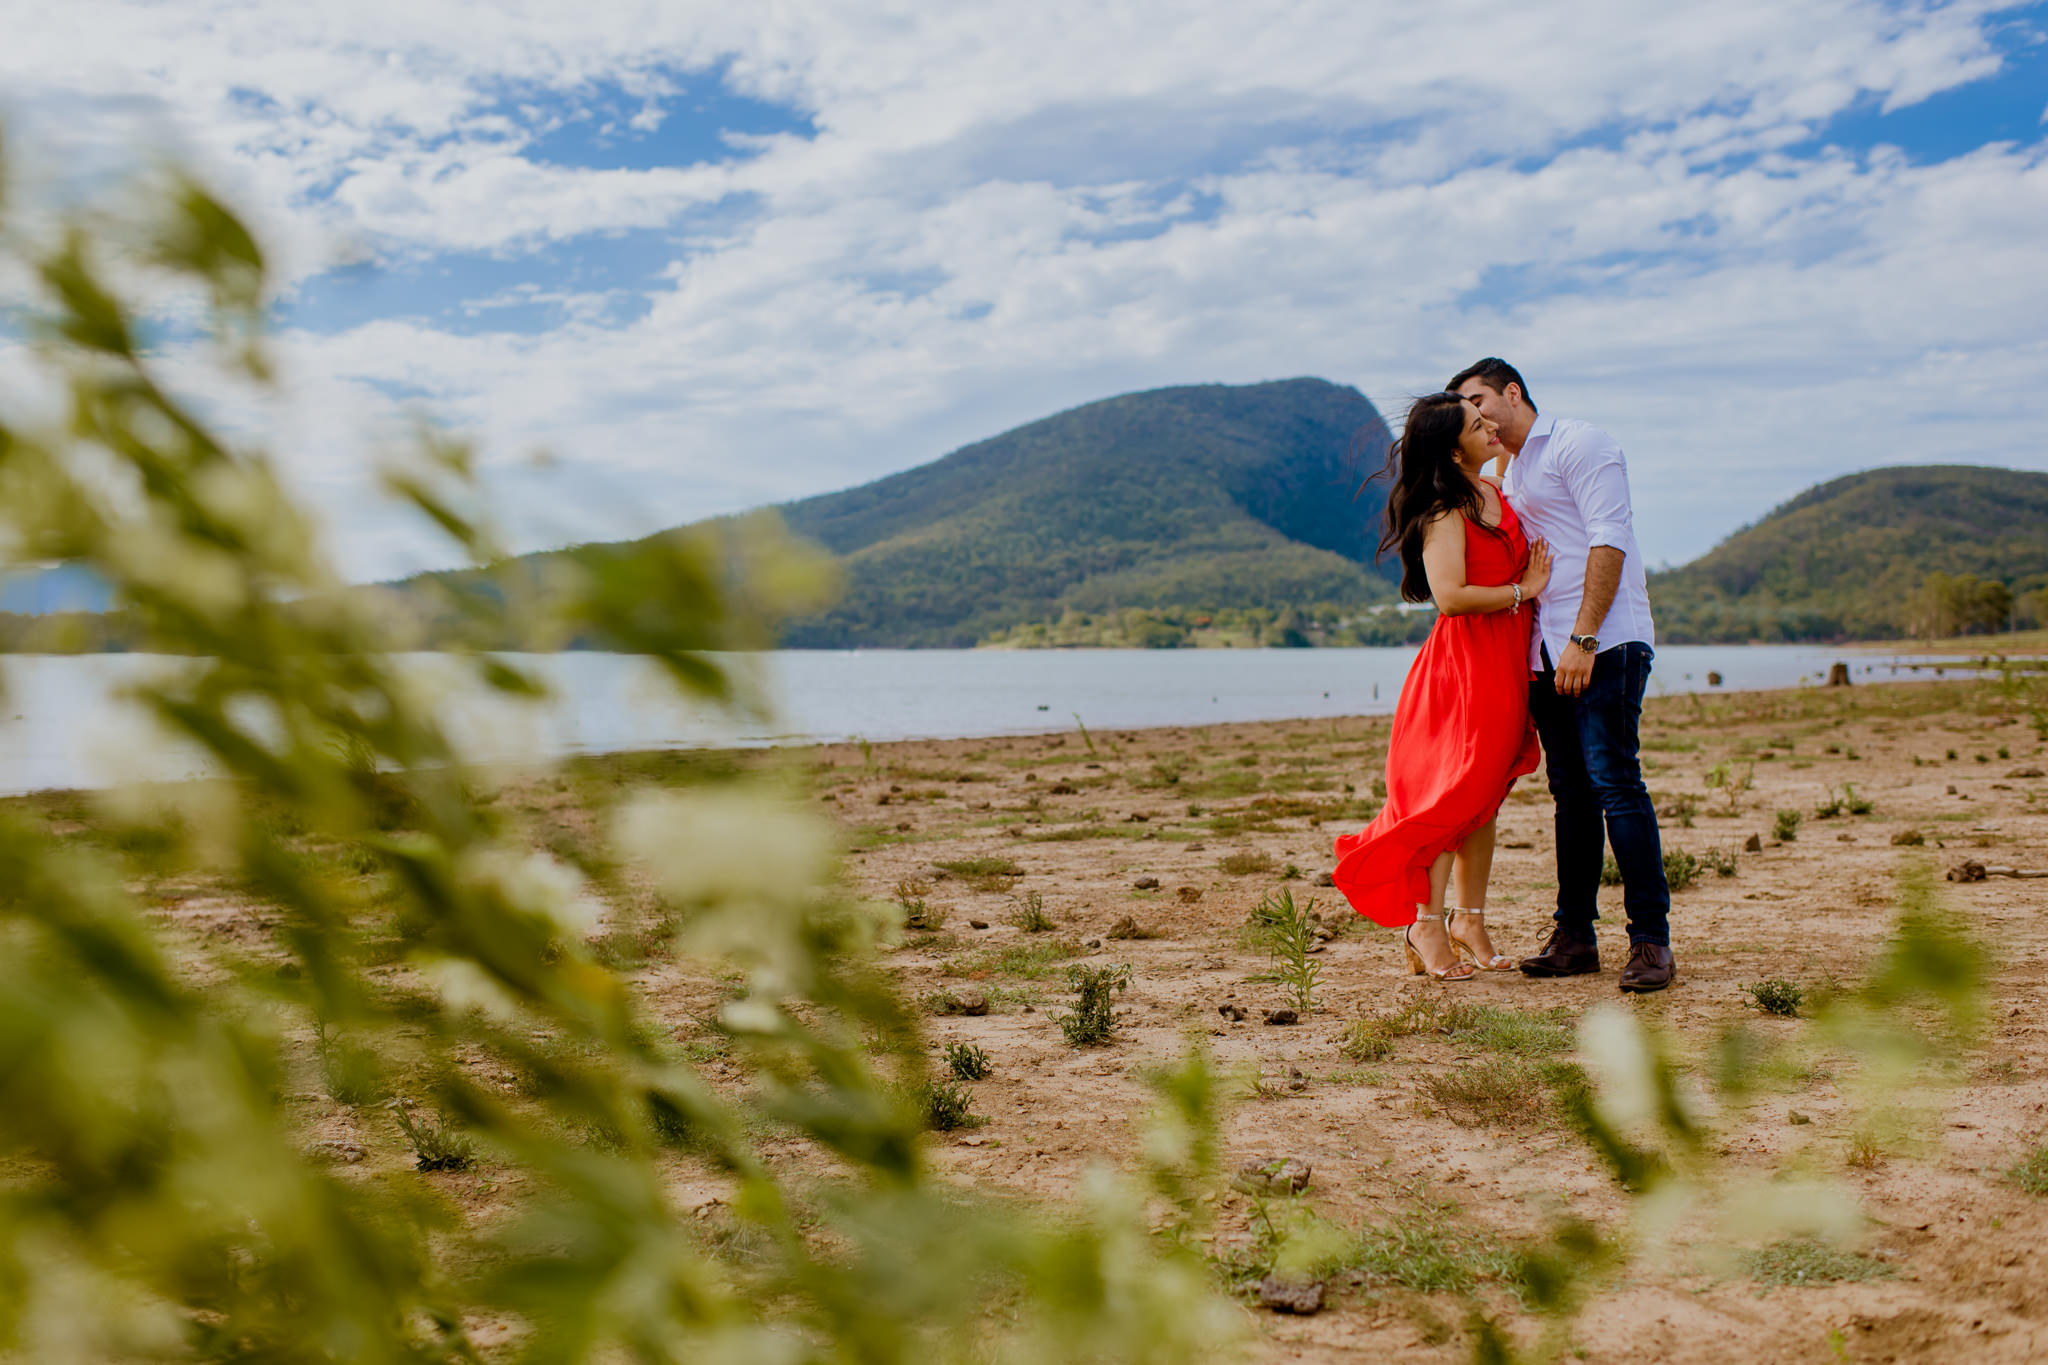 Indian couple hugging on shore beside lake with mountainous landscape in background